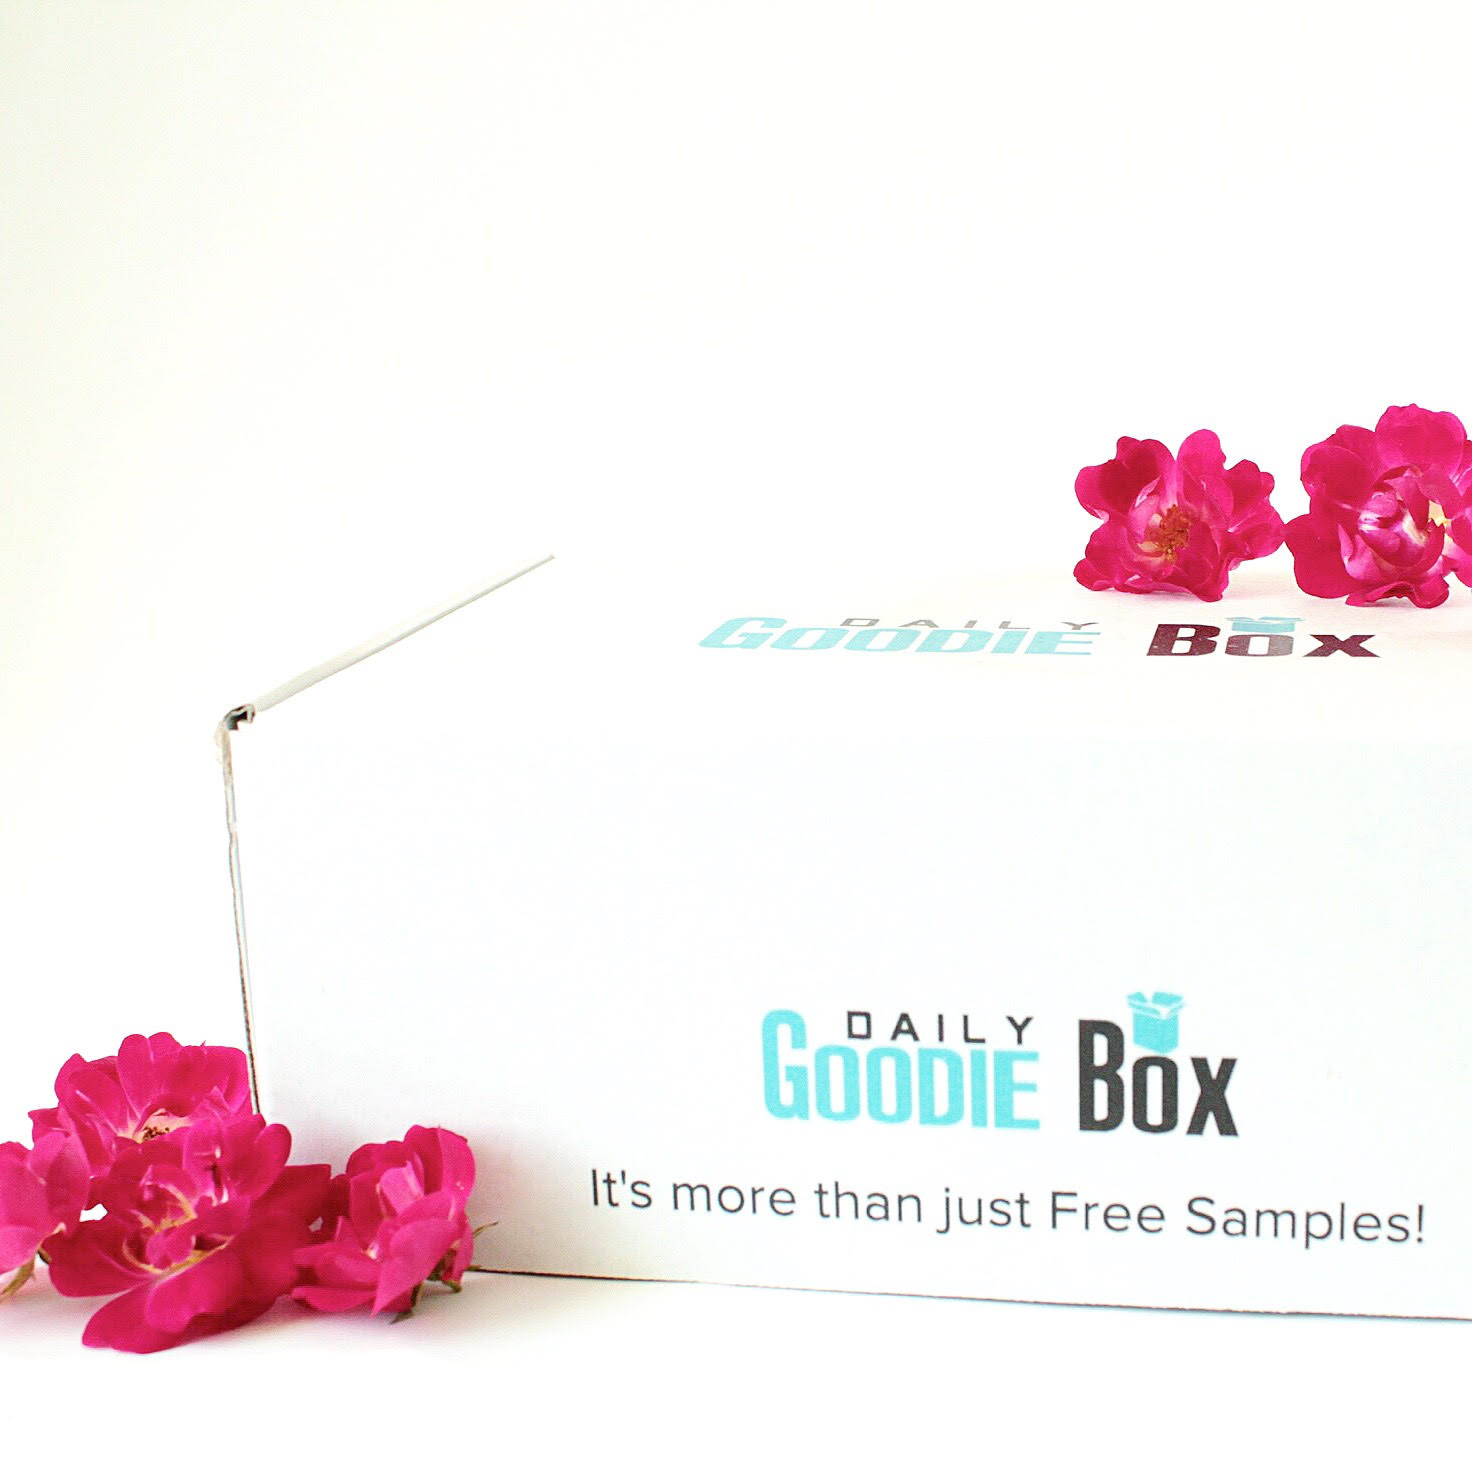 Free Products for Bloggers & Reviewers Series: Daily Goodie Box!